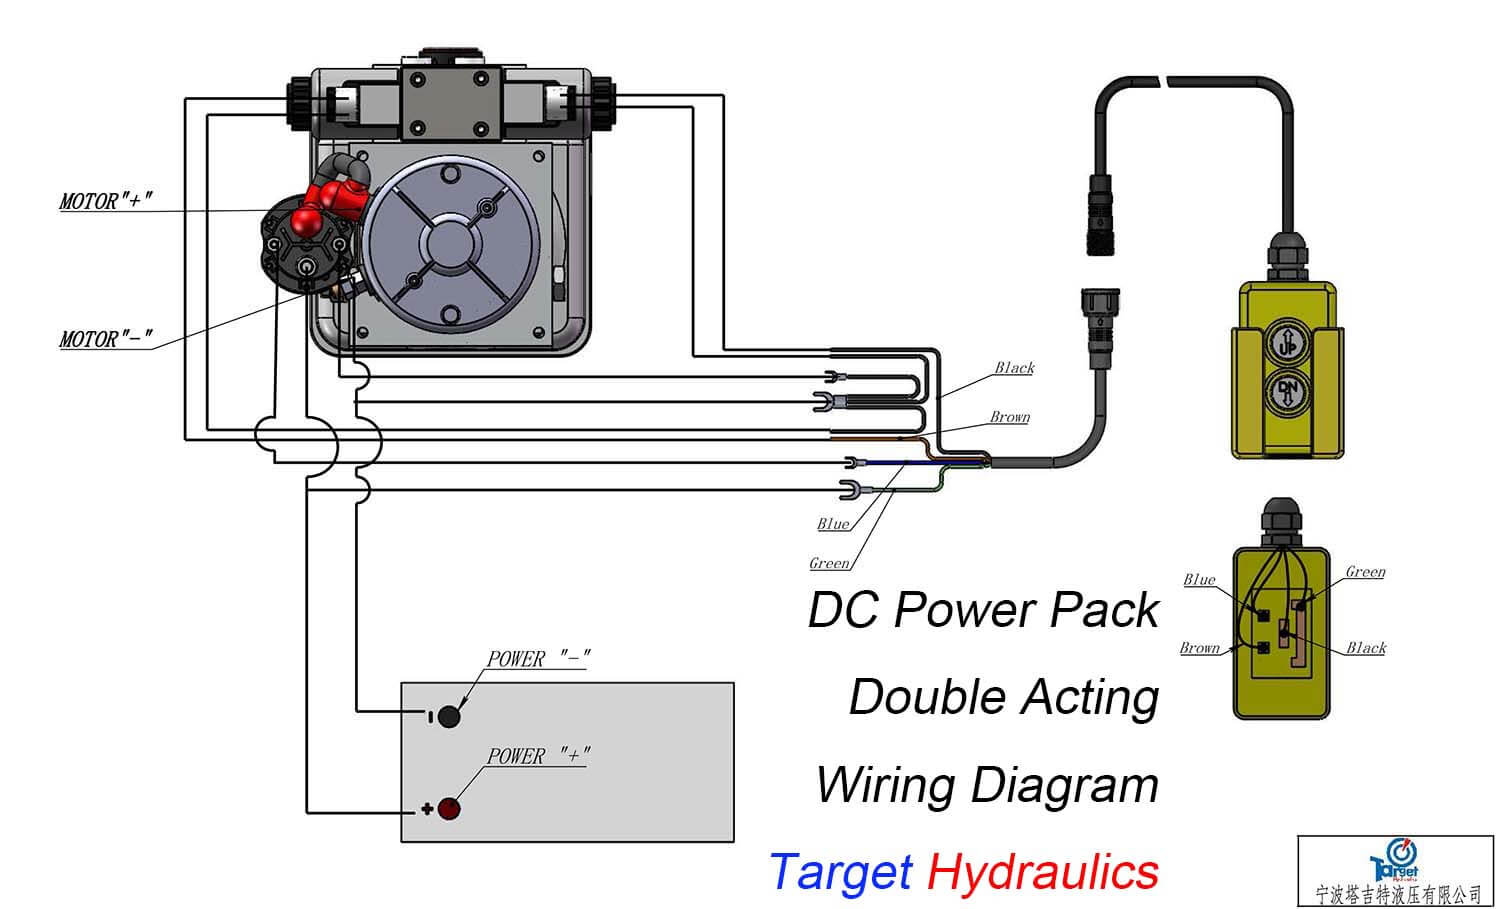 How to Wire_DC Motor Double Acting Power Pack how to wire hydraulic power pack,power unit diagram design 12v hydraulic power pack wiring diagram at soozxer.org